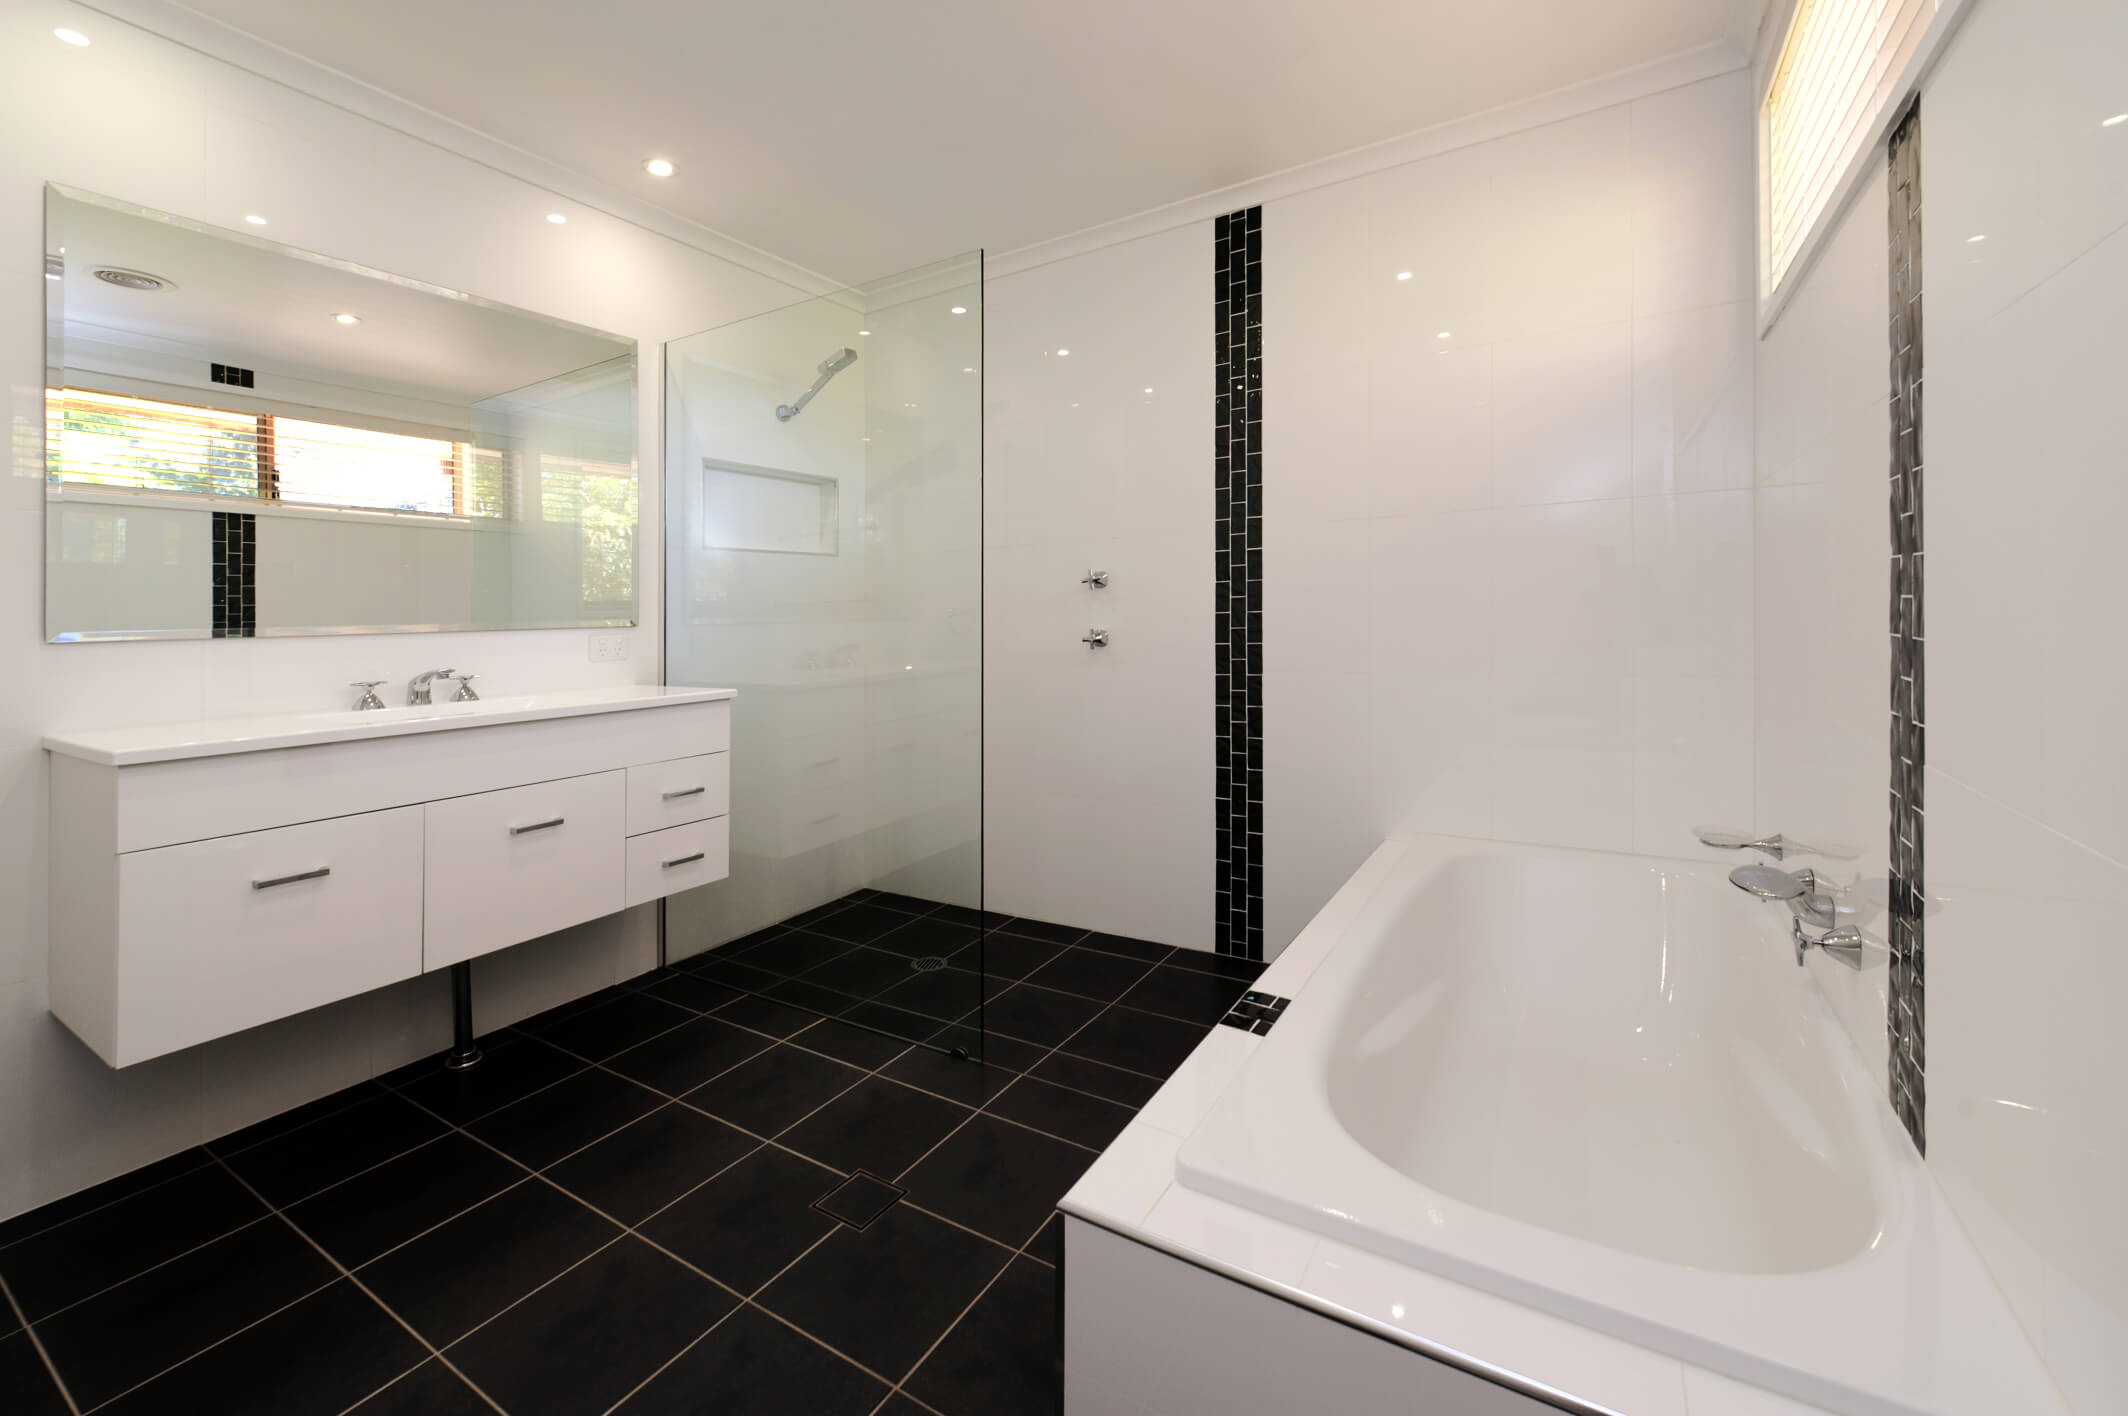 Renovate A Bathroom expert bathroom renovations canberra | small to large bathroom